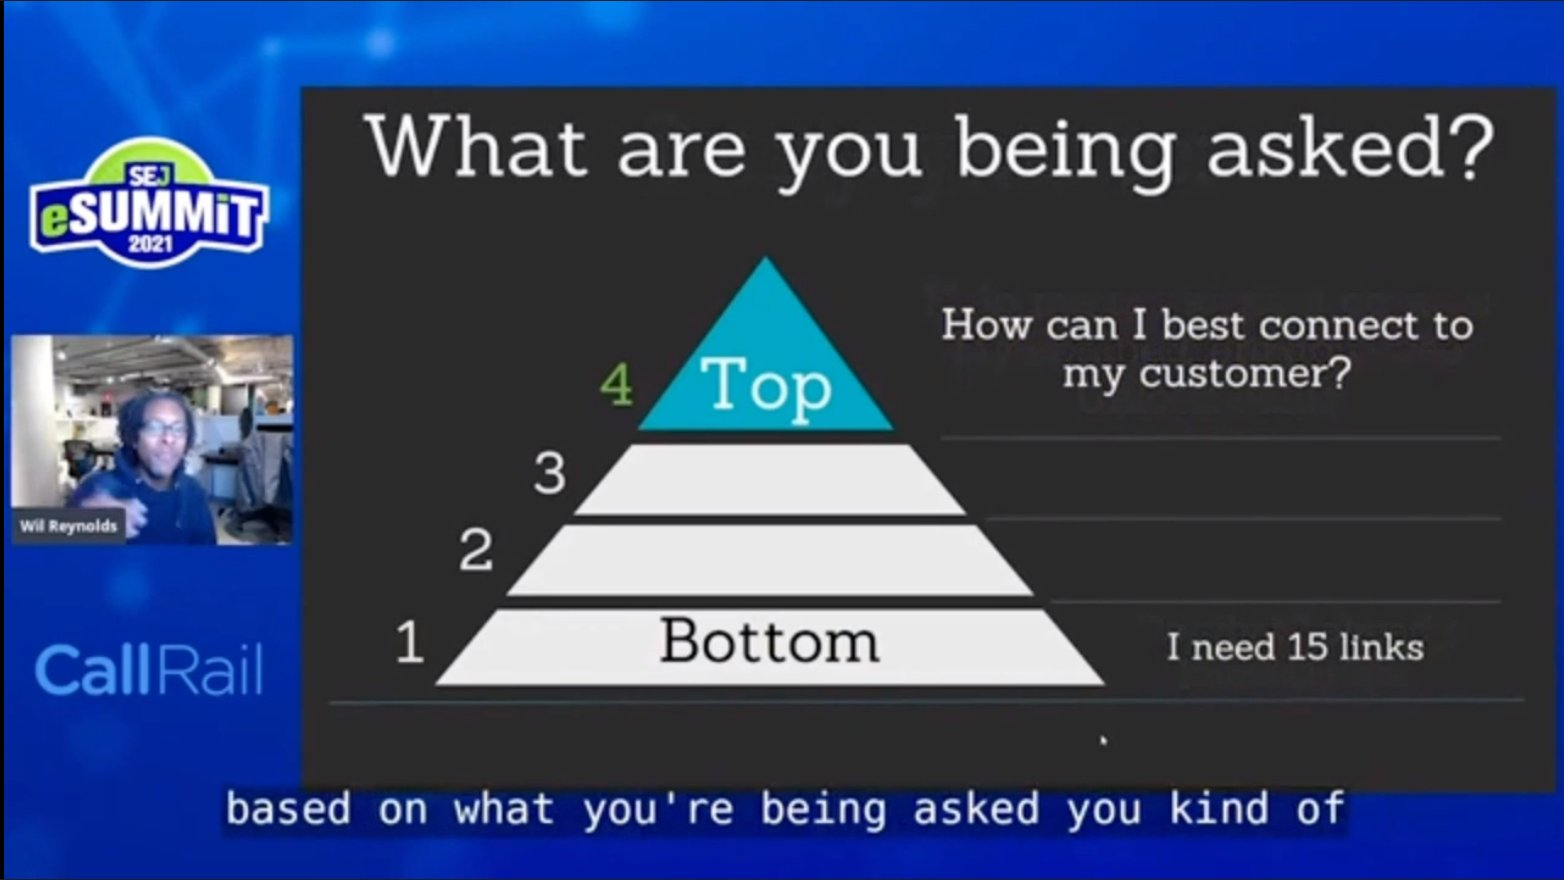 Wil Reynolds value pyramid for SEOs